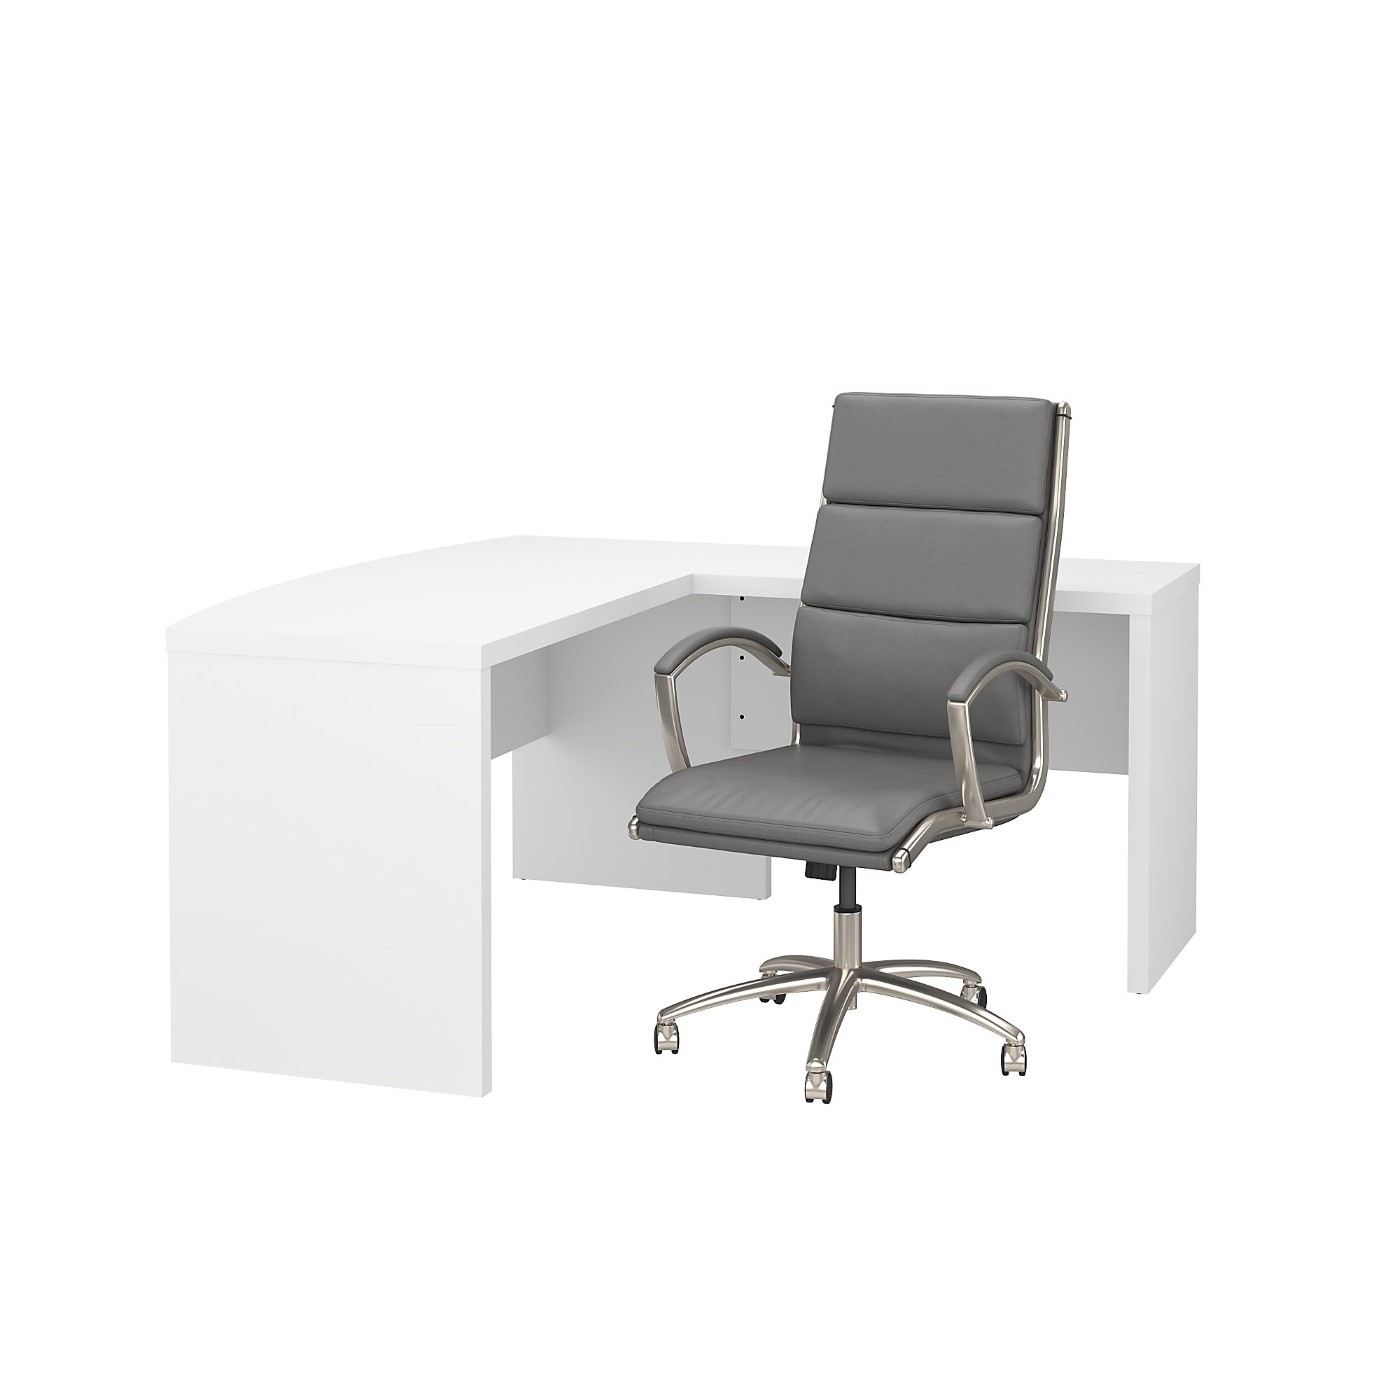 OFFICE BY KATHY IRELAND® ECHO L SHAPED BOW FRONT DESK WITH HIGH BACK CHAIR. FREE SHIPPING SALE DEDUCT 10% MORE ENTER '10percent' IN COUPON CODE BOX WHILE CHECKING OUT.